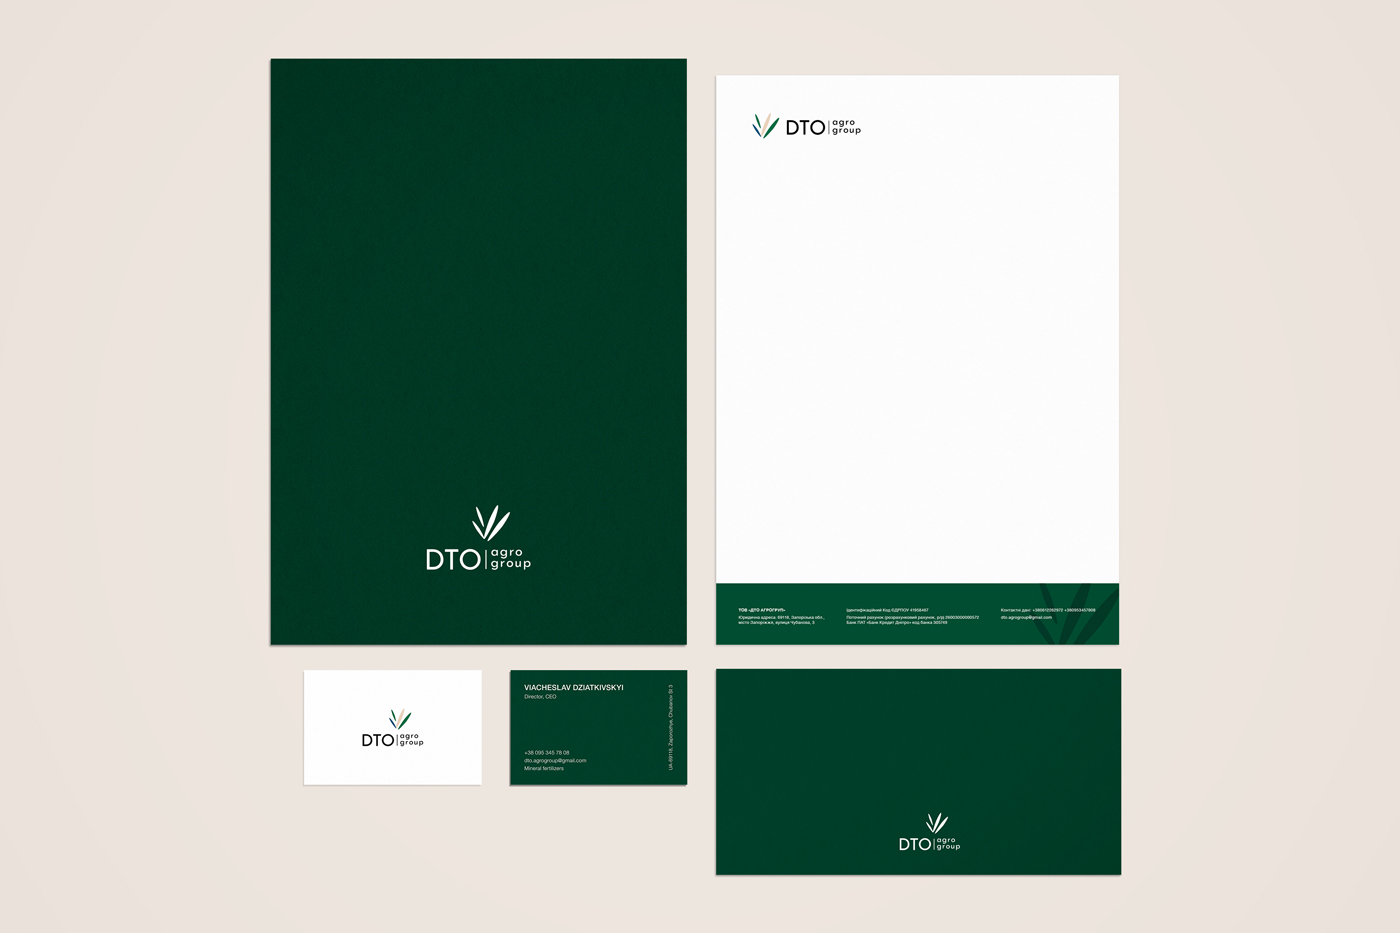 Brand identity and logo. Folder, letterhead, envelope and business cards for Ukrainian agricultural company DTO